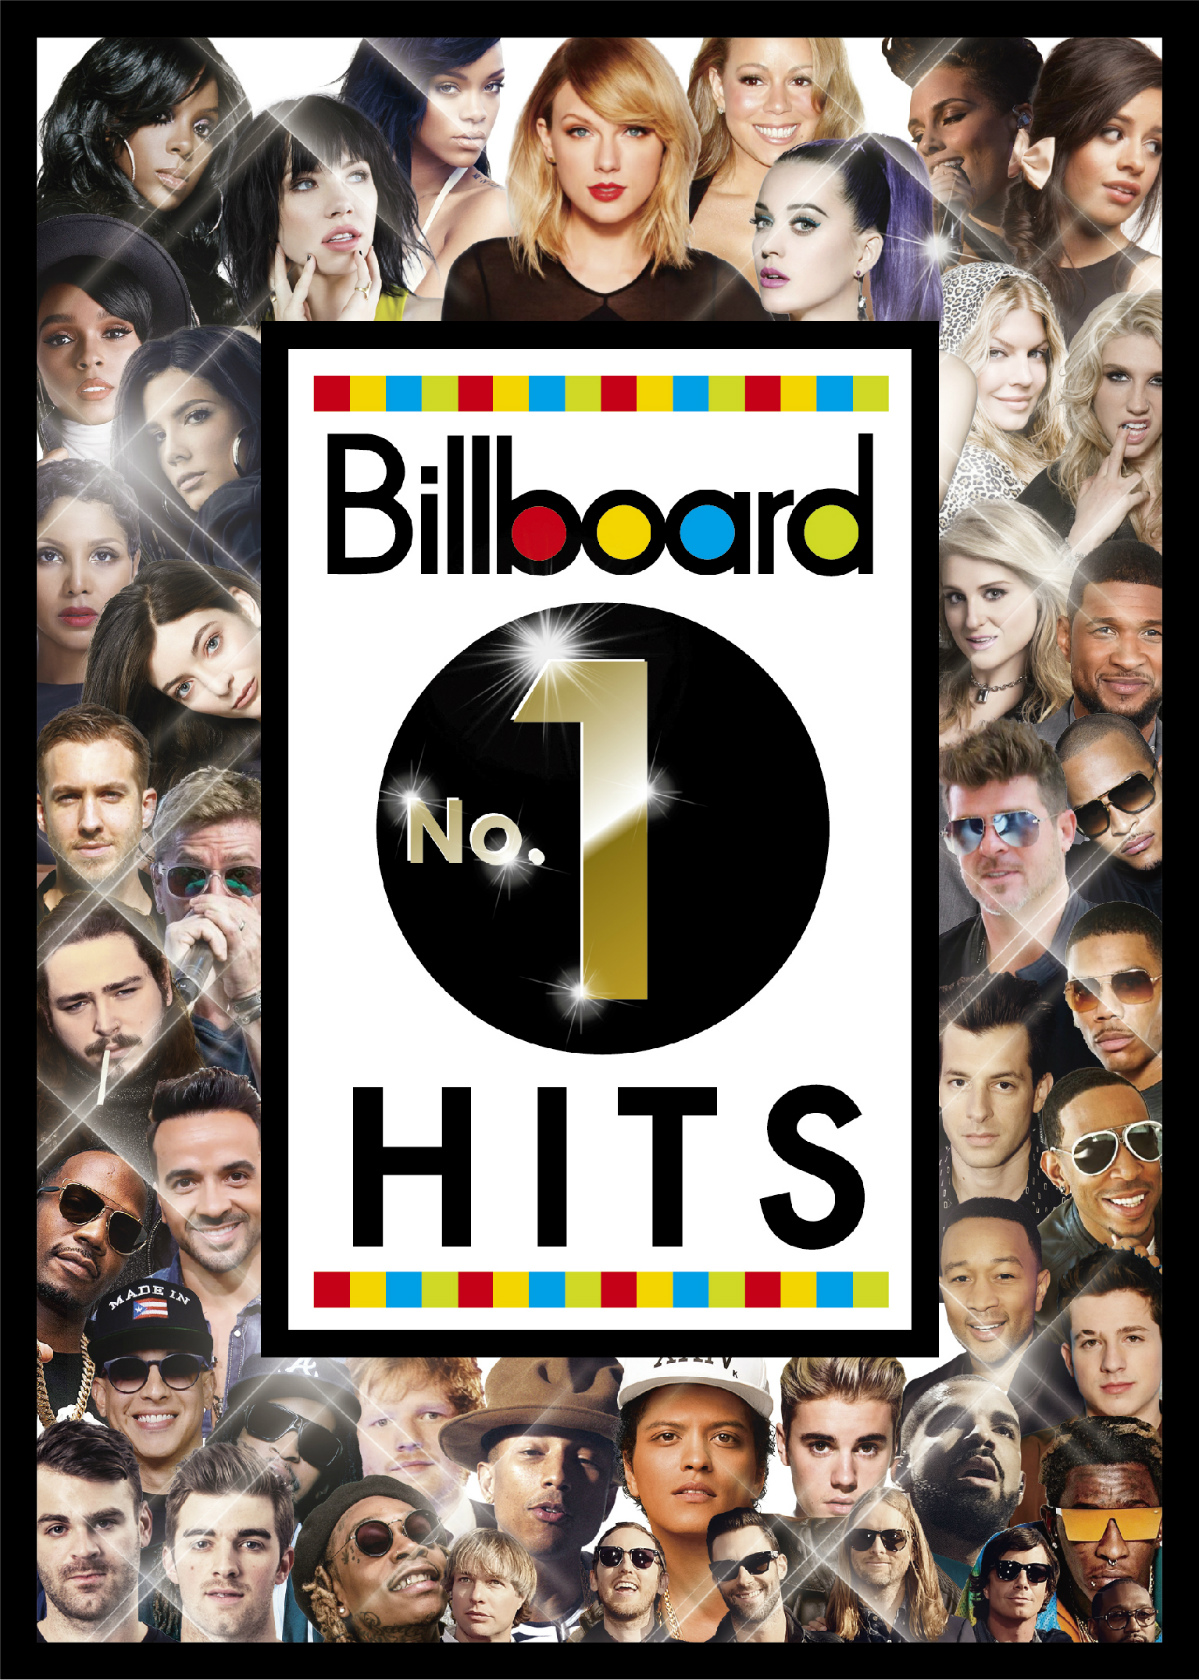 【1組】 Billboard No.1 HITS / V.A  【[国内盤MIX DVD】